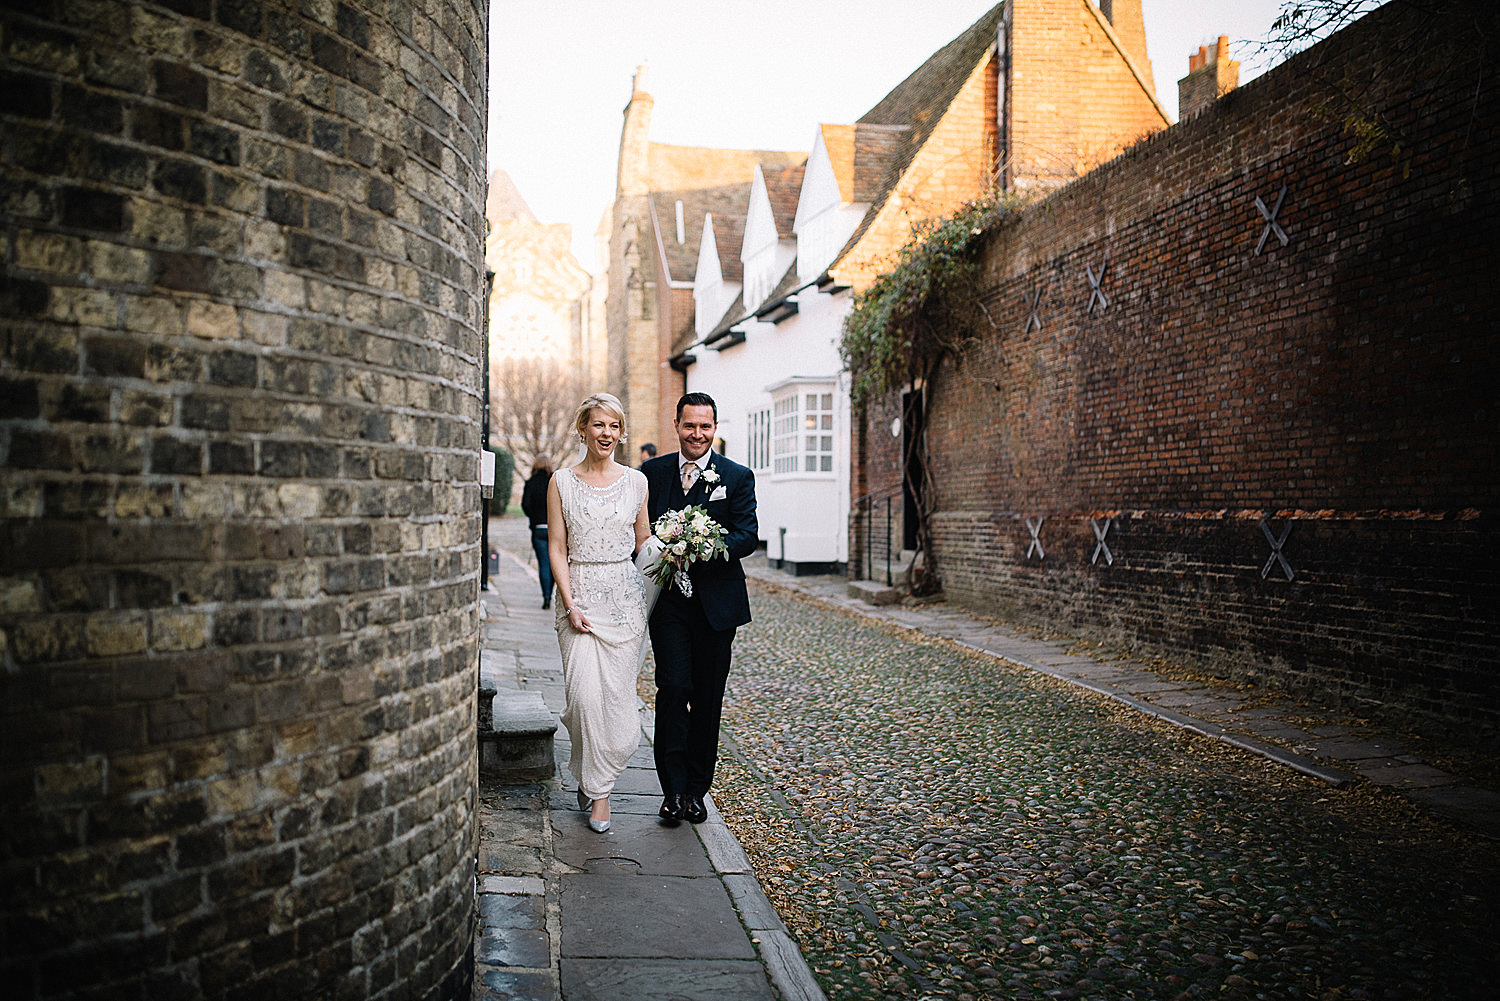 Bride and Groom walking the streets of Rye